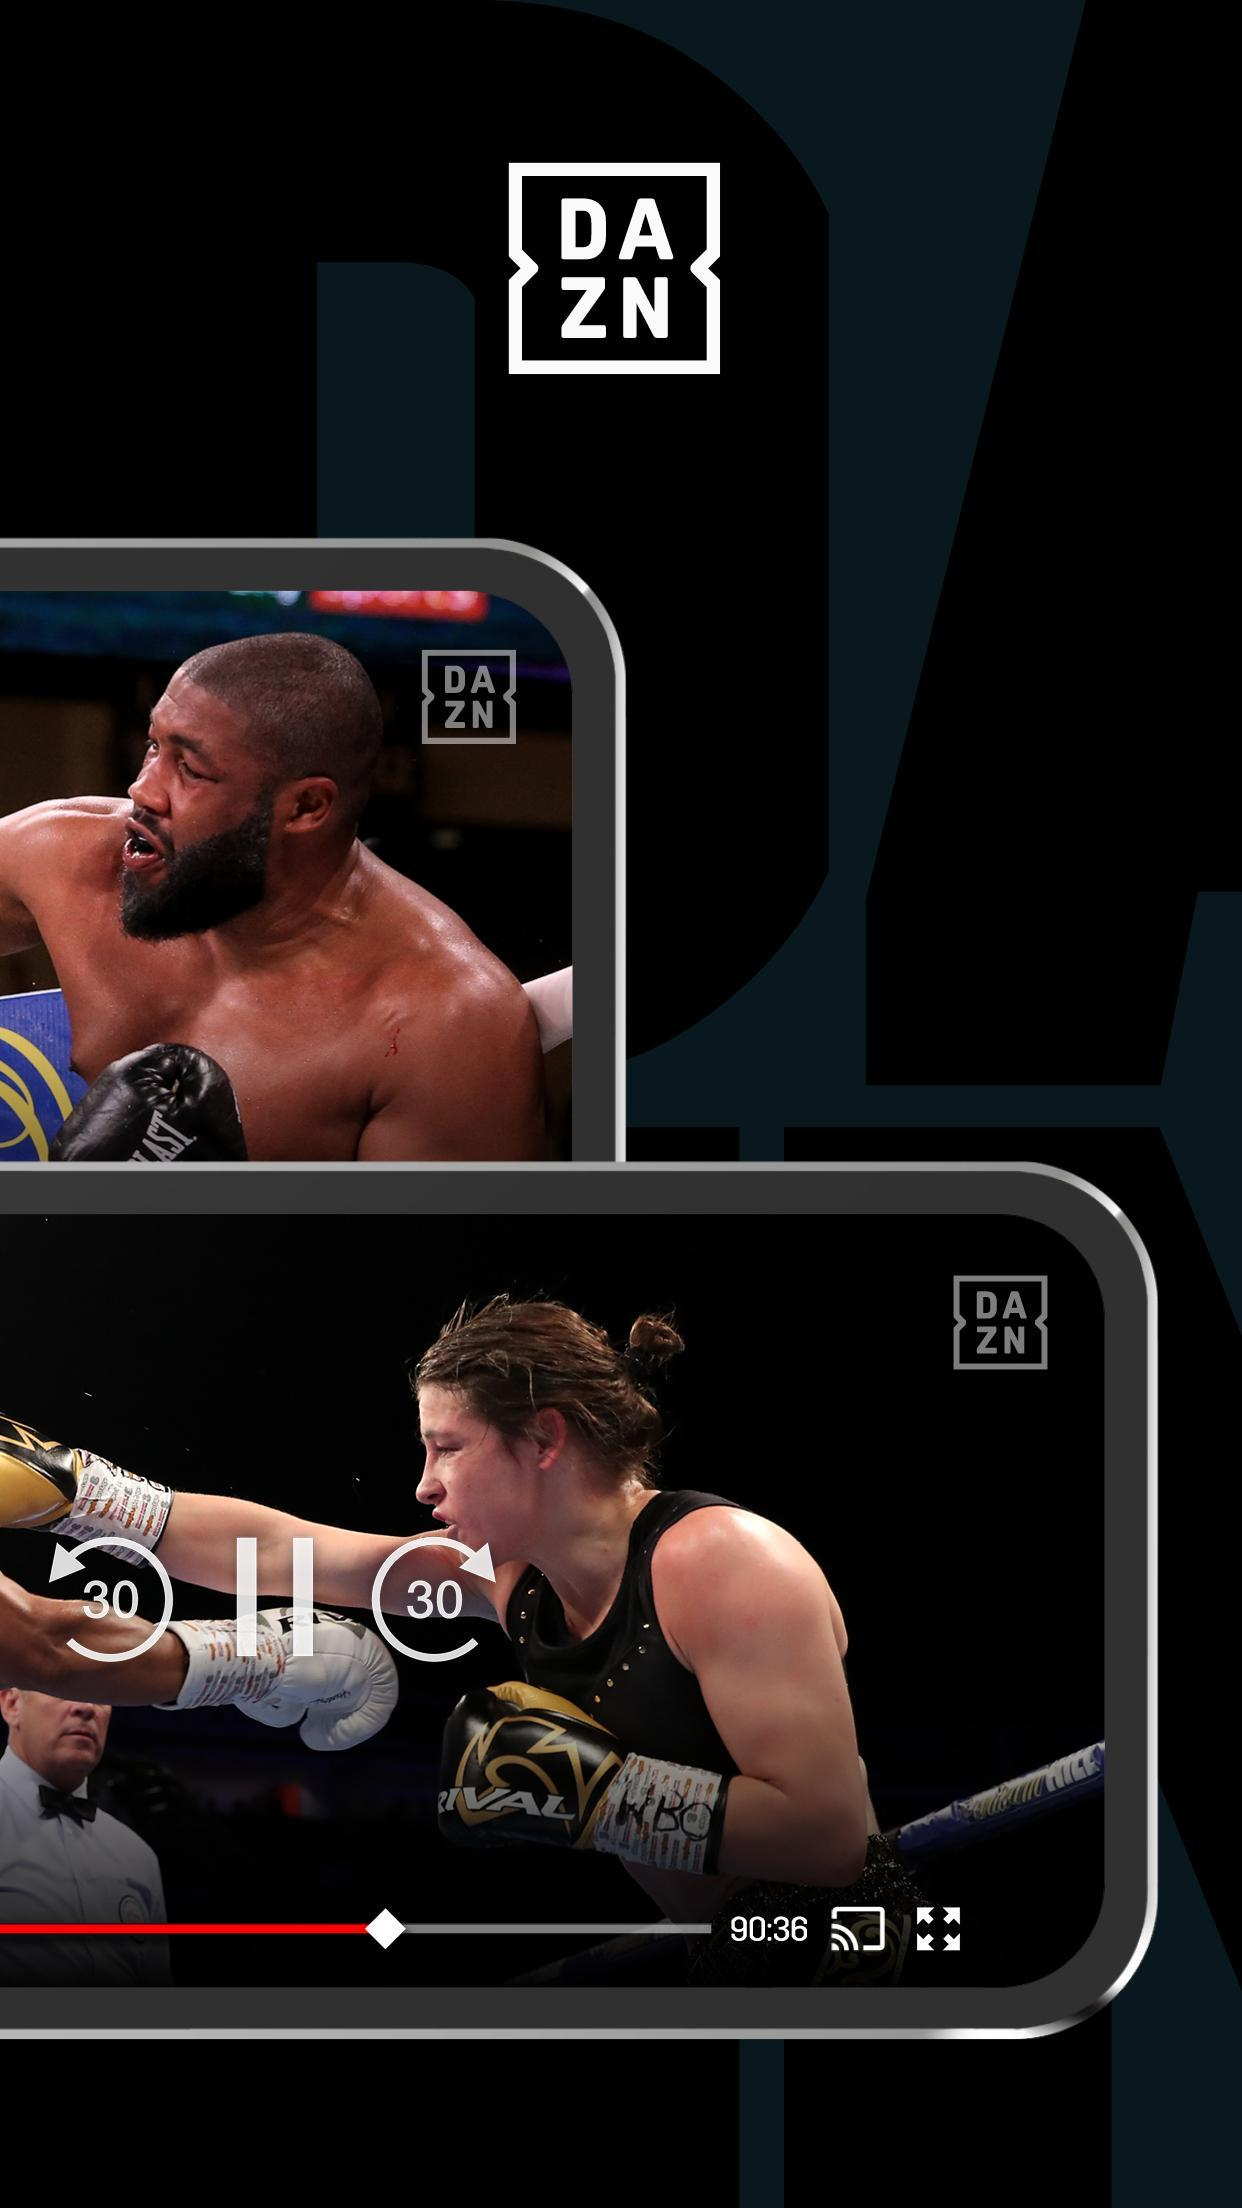 DAZN Live Fight Sports: Boxing, MMA & More 1.69.13 Screenshot 4